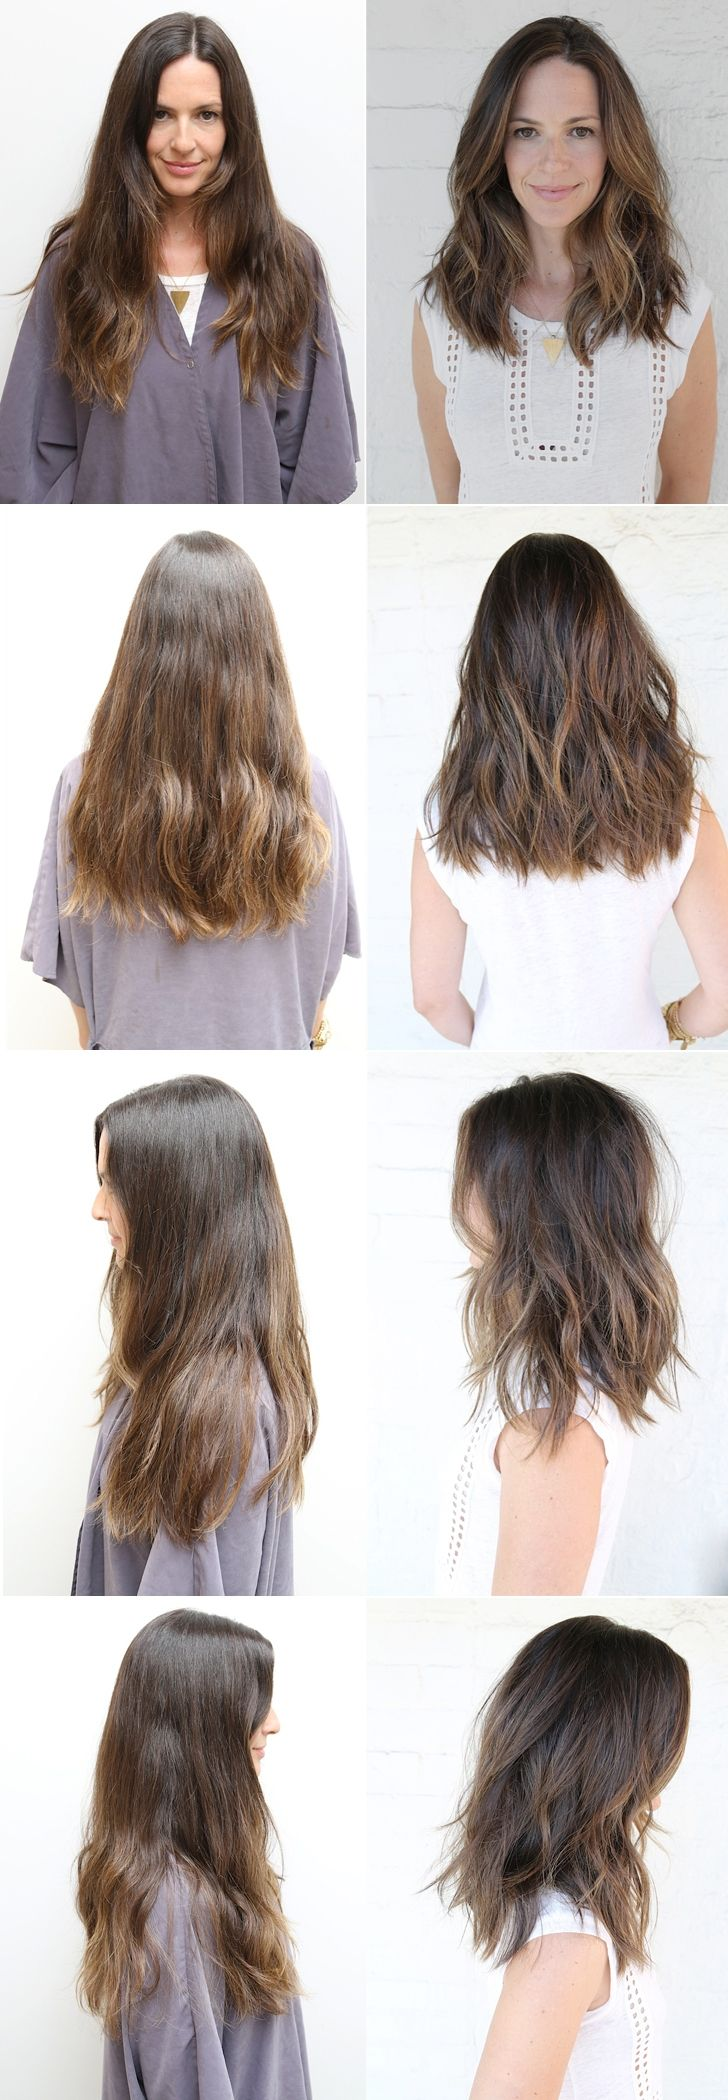 279 best Haircuts and Color- Before and After images on Pinterest ...